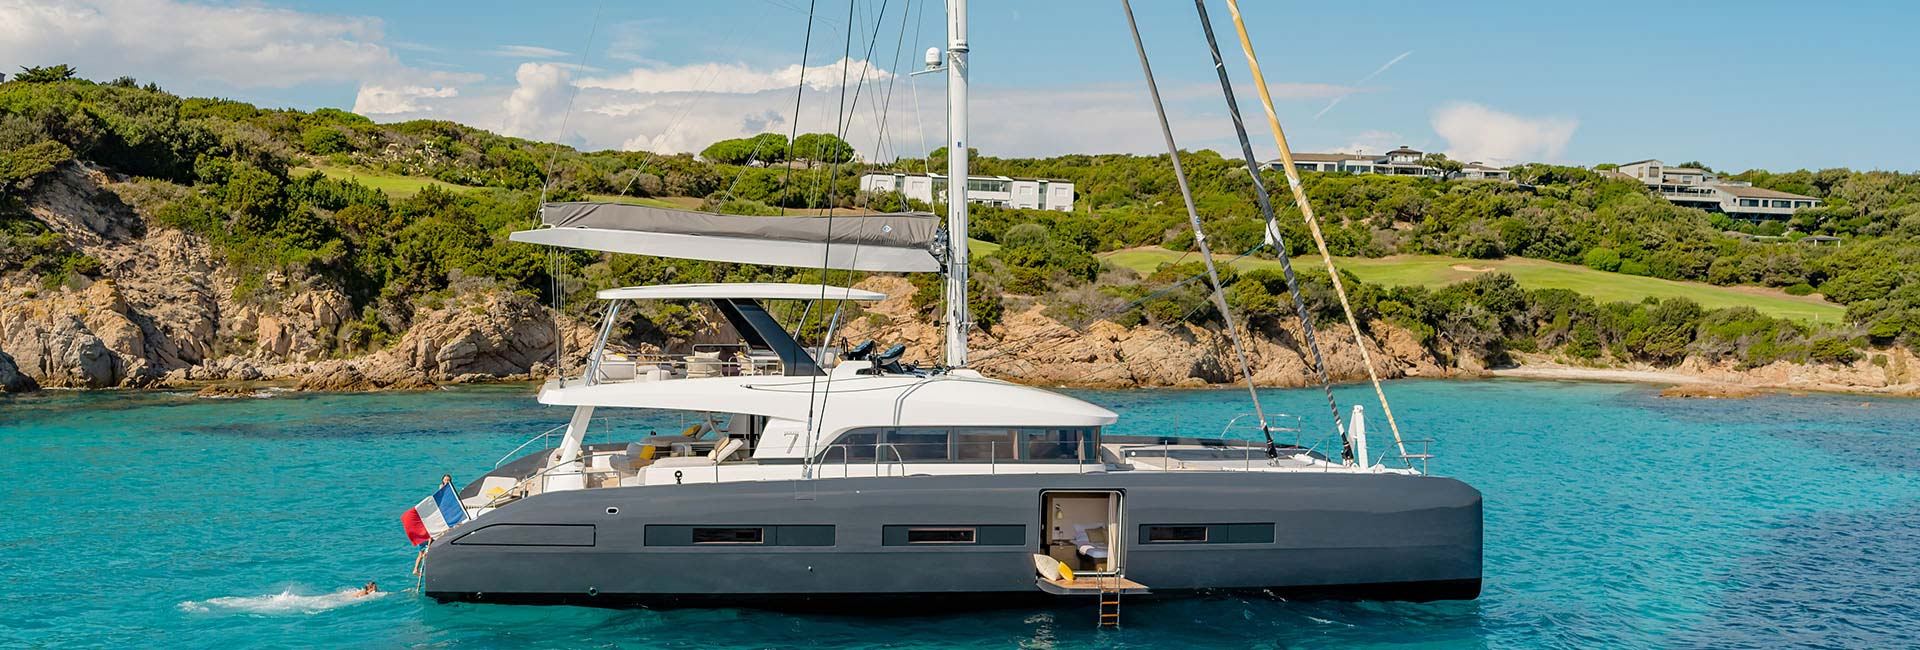 Catamaran Charter, Luxury Catamaran Rental